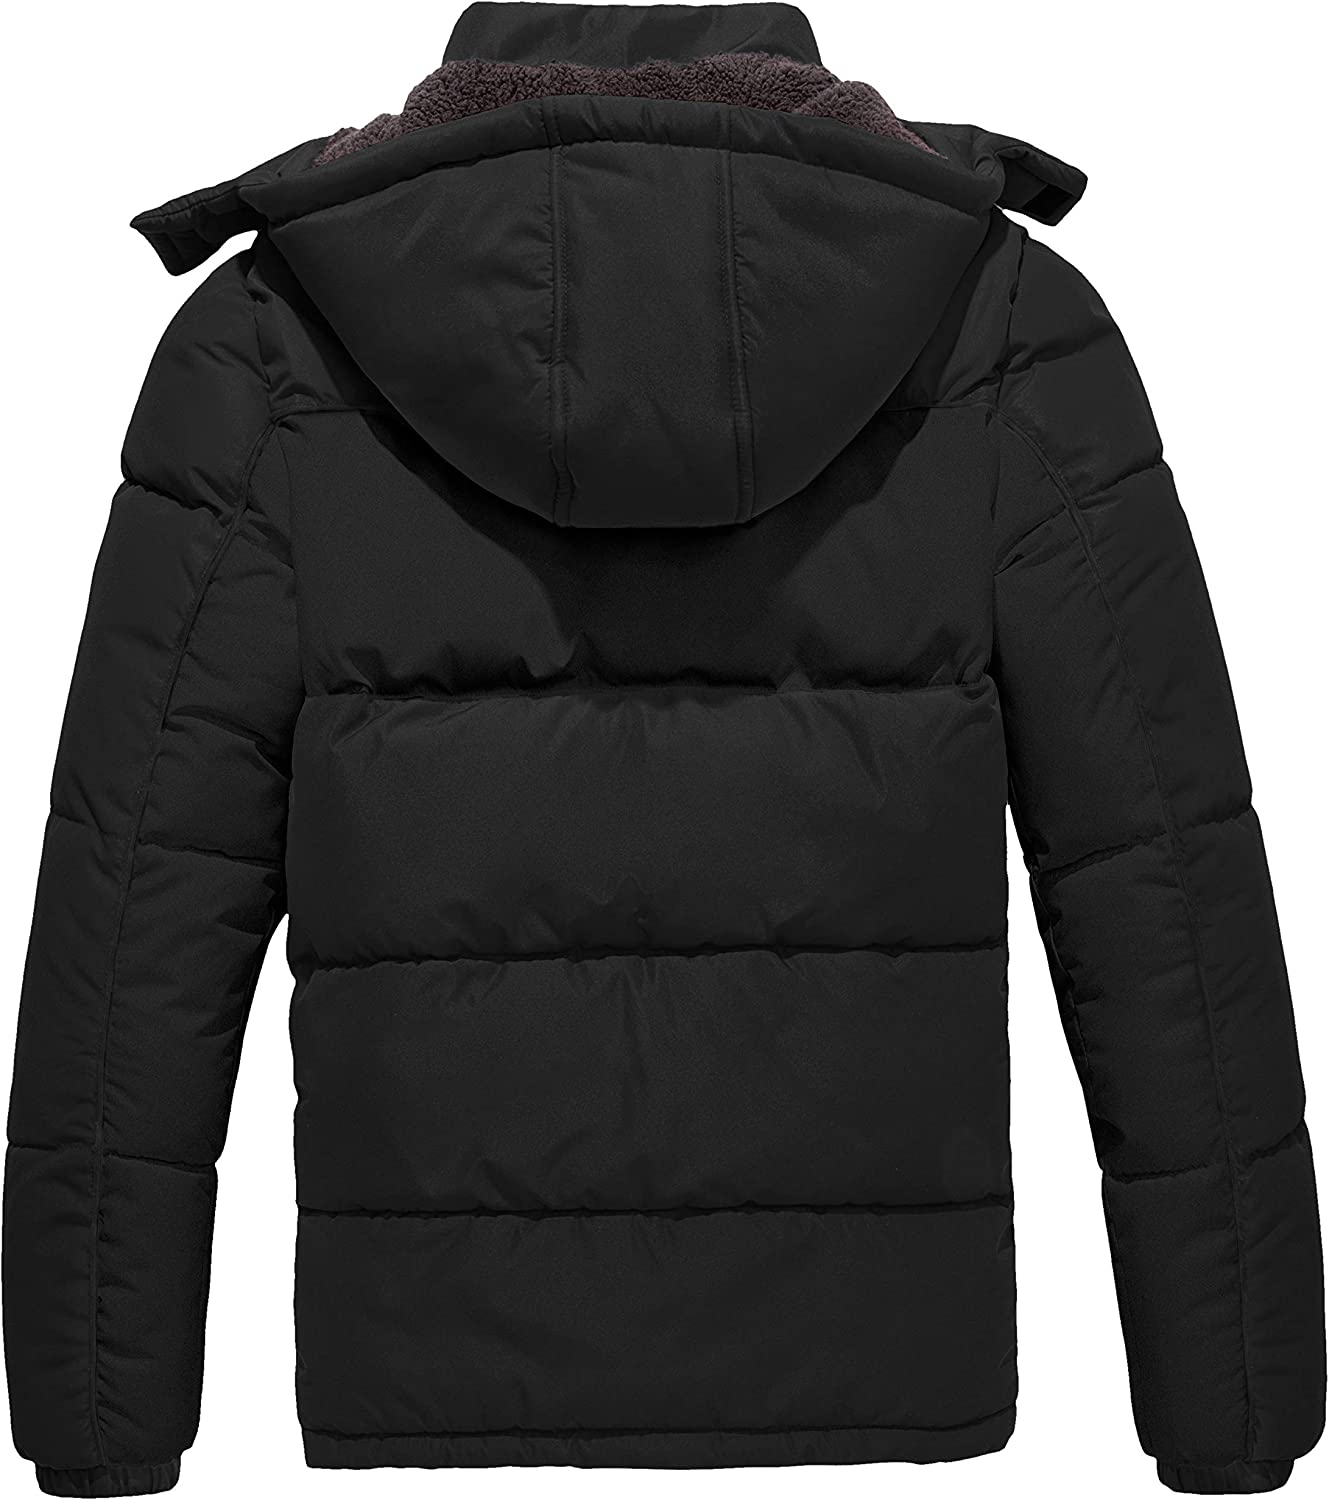 Wantdo Mens Puffer Jacket Thicken Padded Winter Coat with Removable Hood